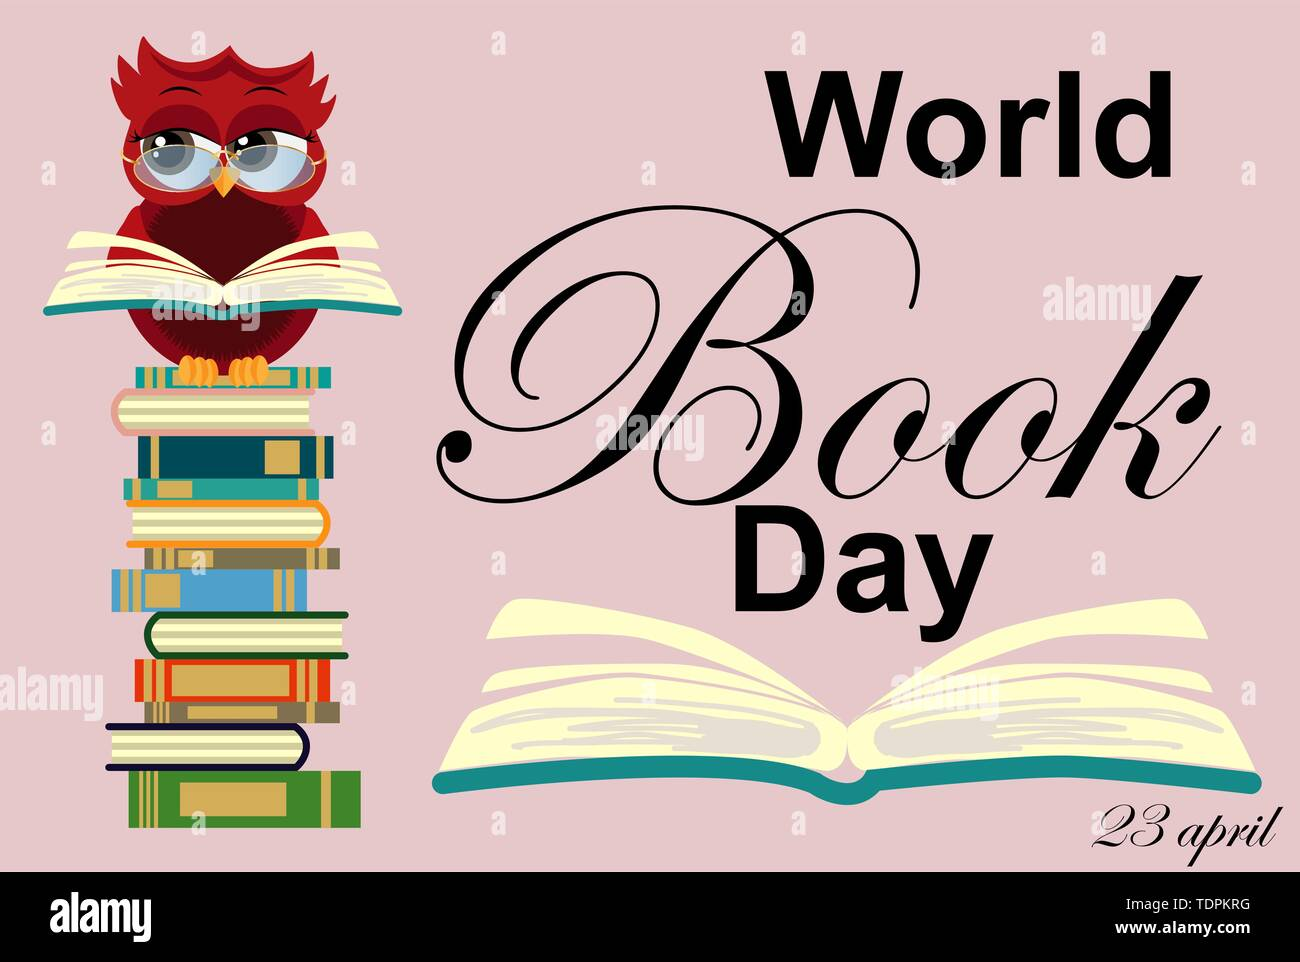 World book day. Smart owl on stack of books, open book and lettering on teal background. Knowledge, education, studying, learning - Stock Vector